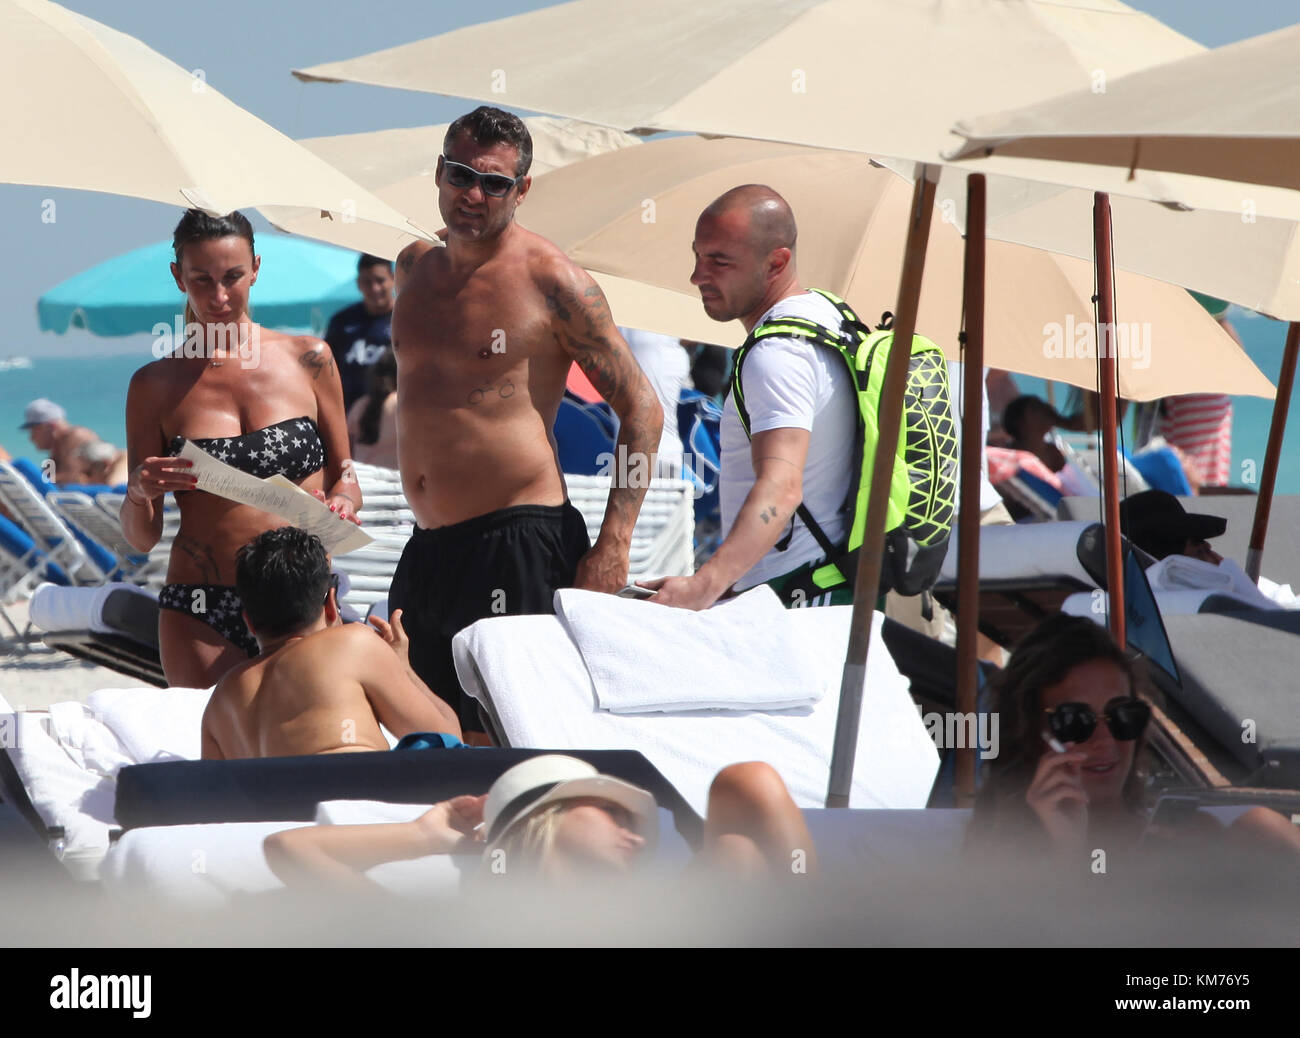 MIAMI BEACH, FL - MARCH 20: Retired Italian professional footballer Christian Vieri who played as a centre forward - Stock Image